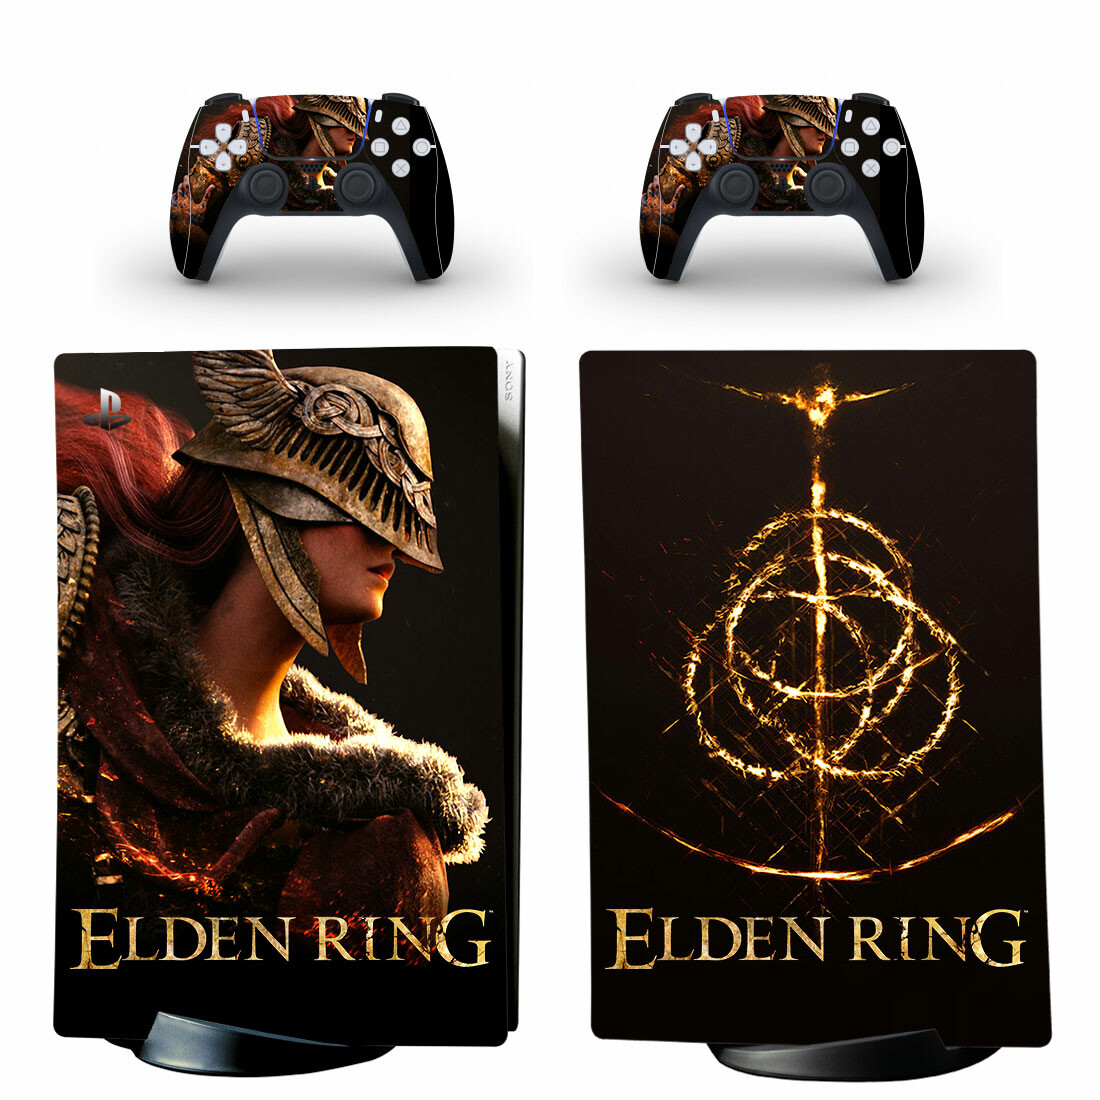 Elden Ring Skin Sticker Decal For PS5 Digital Edition And Controllers